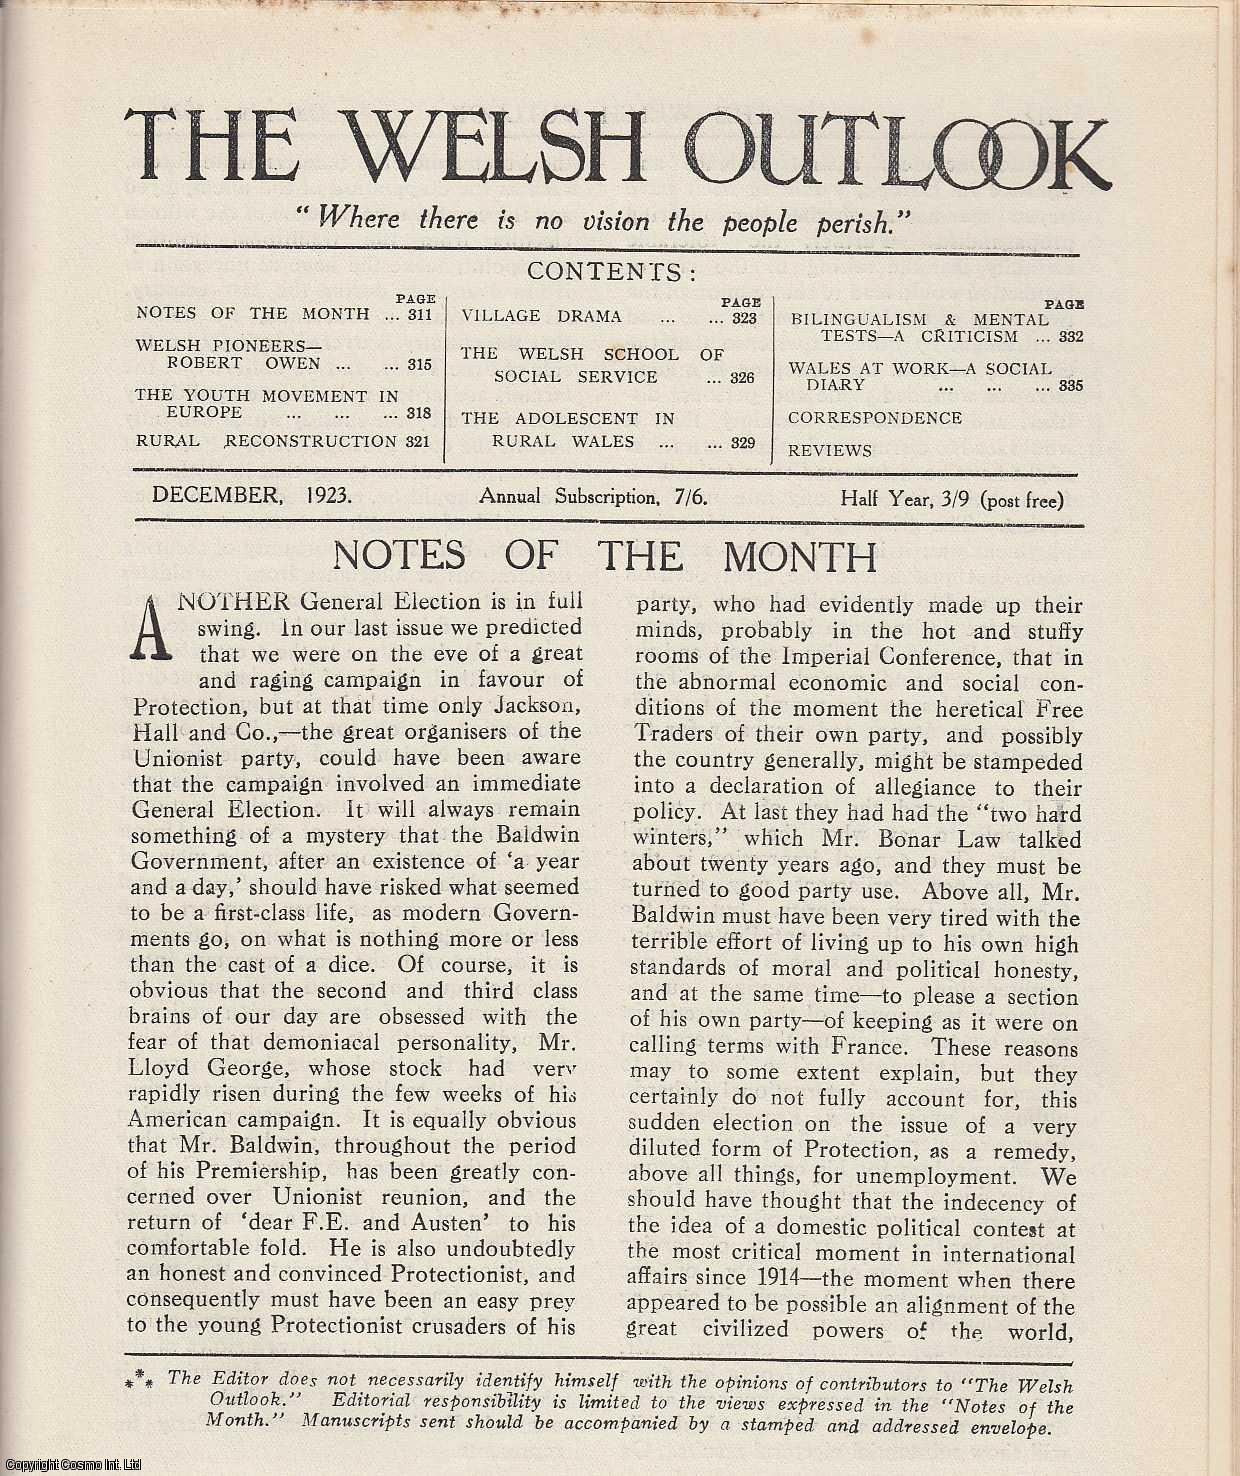 The Welsh Outlook. A Monthly Journal of National Social Progress. December, 1923. Contains; Robert Owen by Right Hon. G.N. Barnes; The Youth Movement in Europe by Henri Johannot; Rural Reconstruction by Montague Fordham; Village Drama by Miss Mary Kelly; The Welsh School of Social Service - August, 1923 by B. Bowen Thomas; The Adolescent in Rural Wales by William King; Bilingualism and Mental Tests - A Criticism by A. Donald Amos; Wales at Work - A Social Diary., Thomas Jones (Editor)